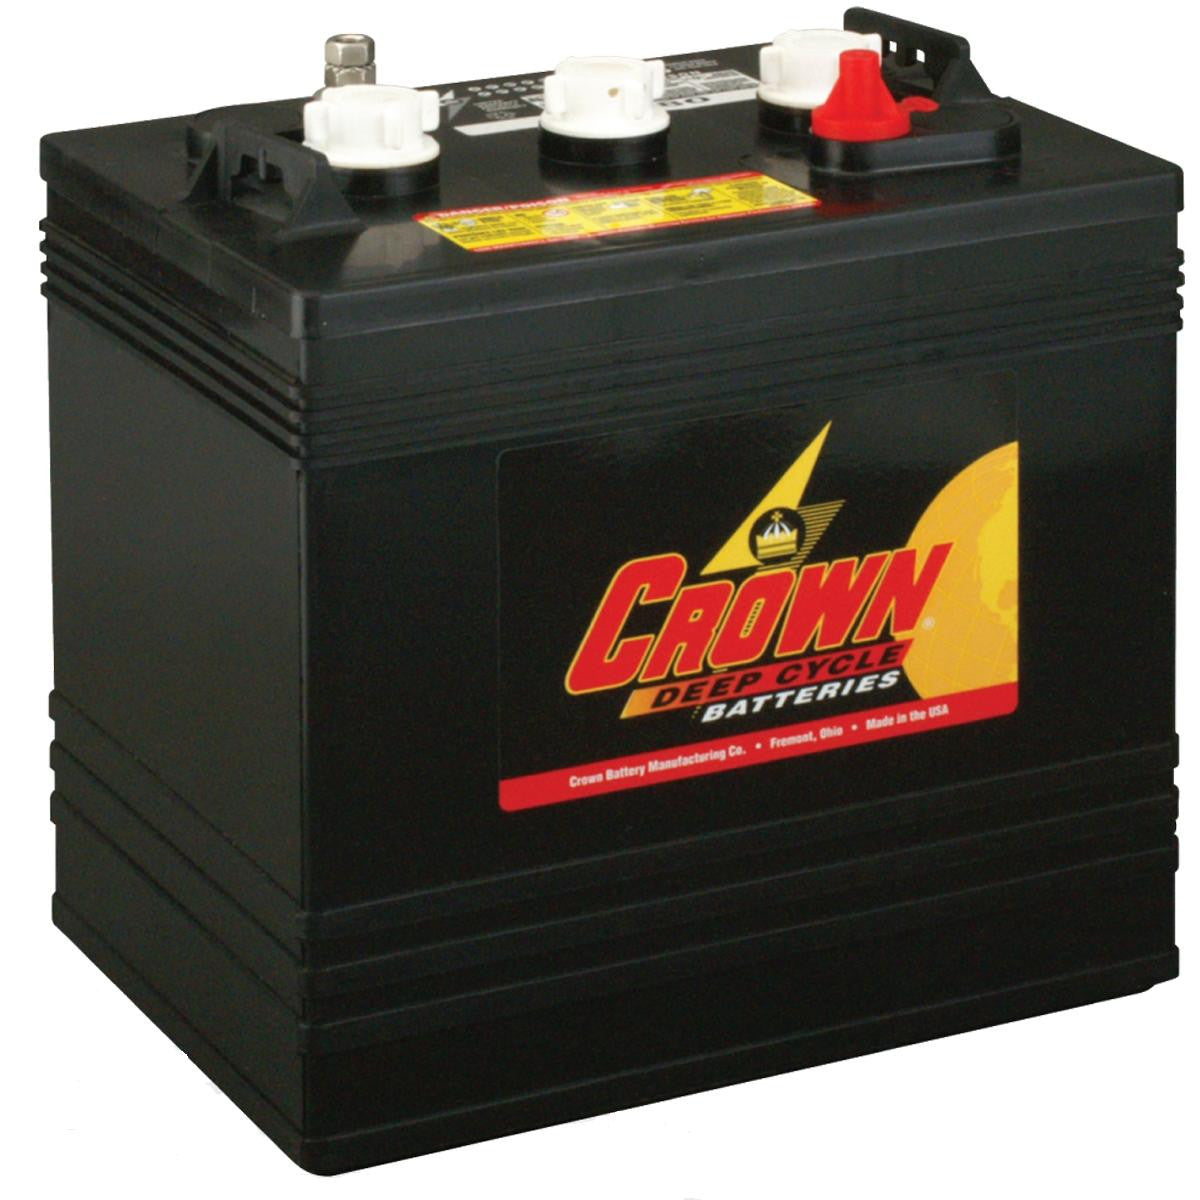 Crown CR220 Deep Cycle Battery 6V 220Ah